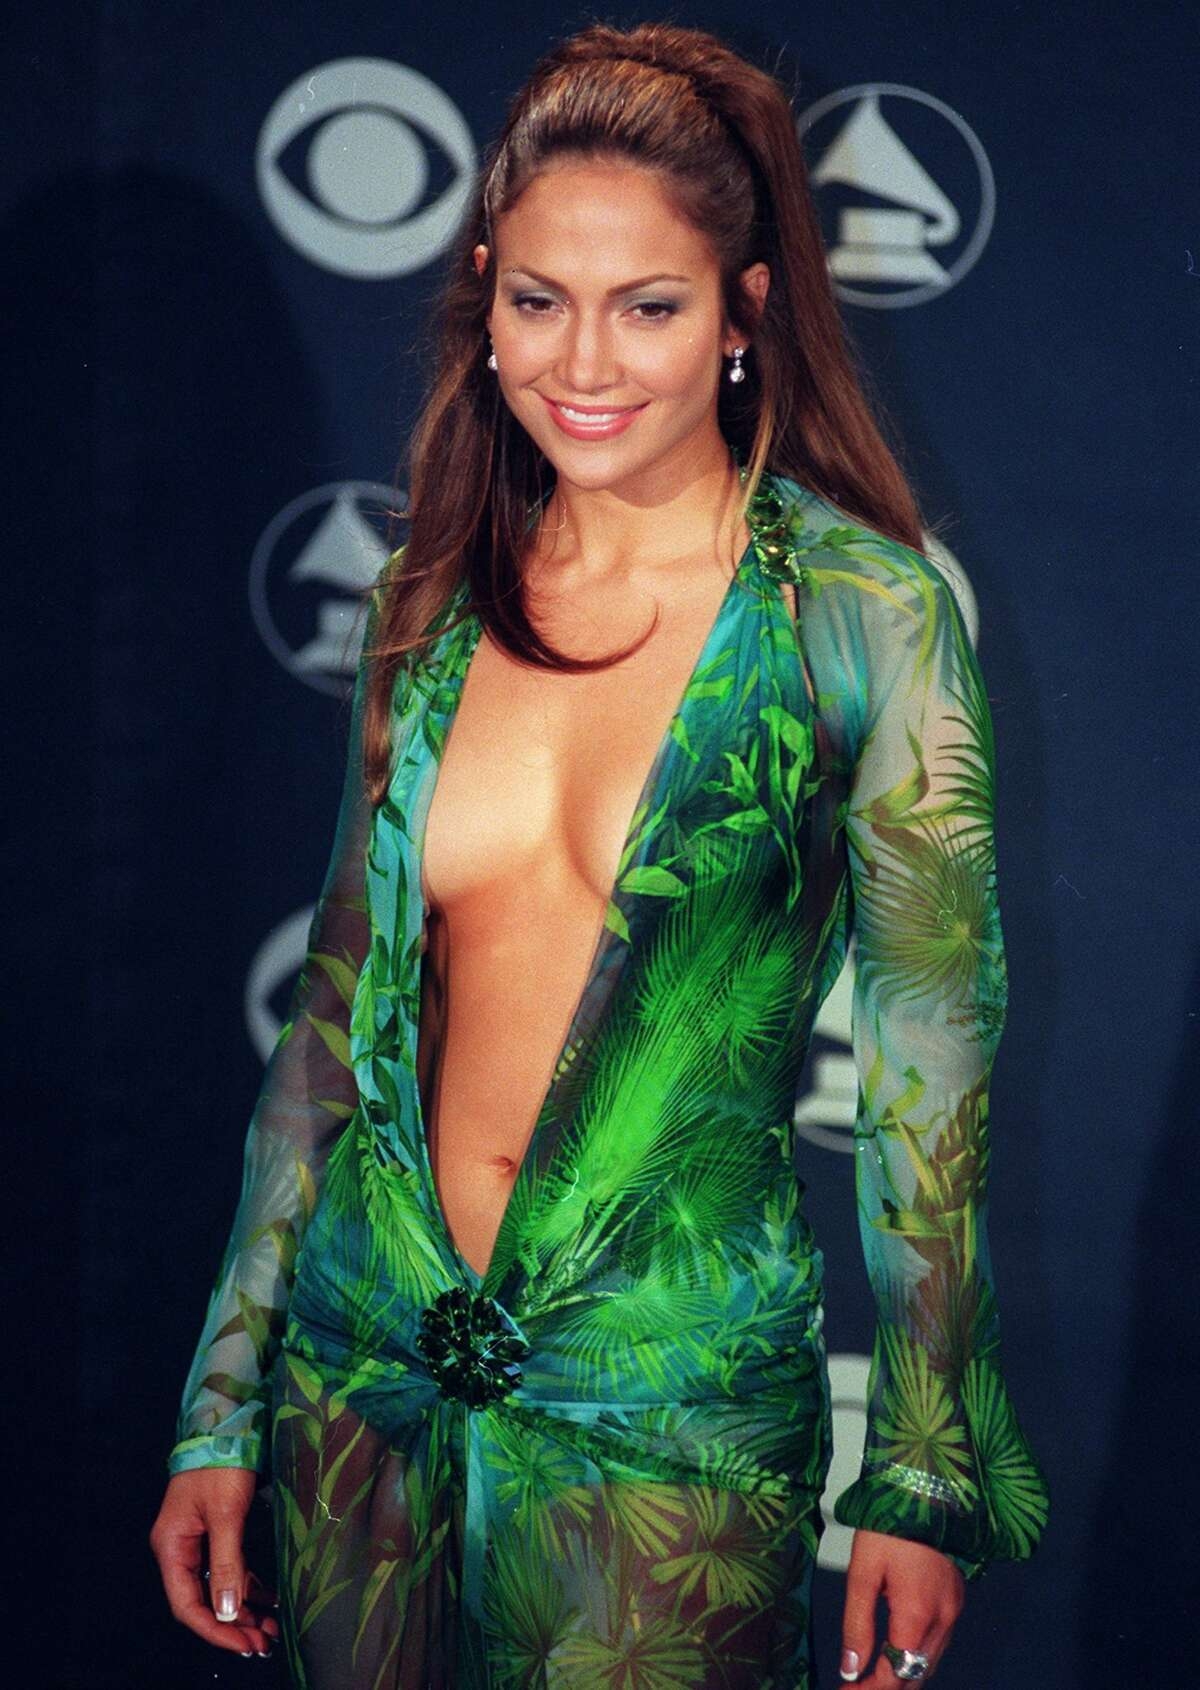 2000: J. Lo wears The Dress Just before the Grammys in February 2000, Jennifer Lopez was too busy to find a gown. Her debut album,